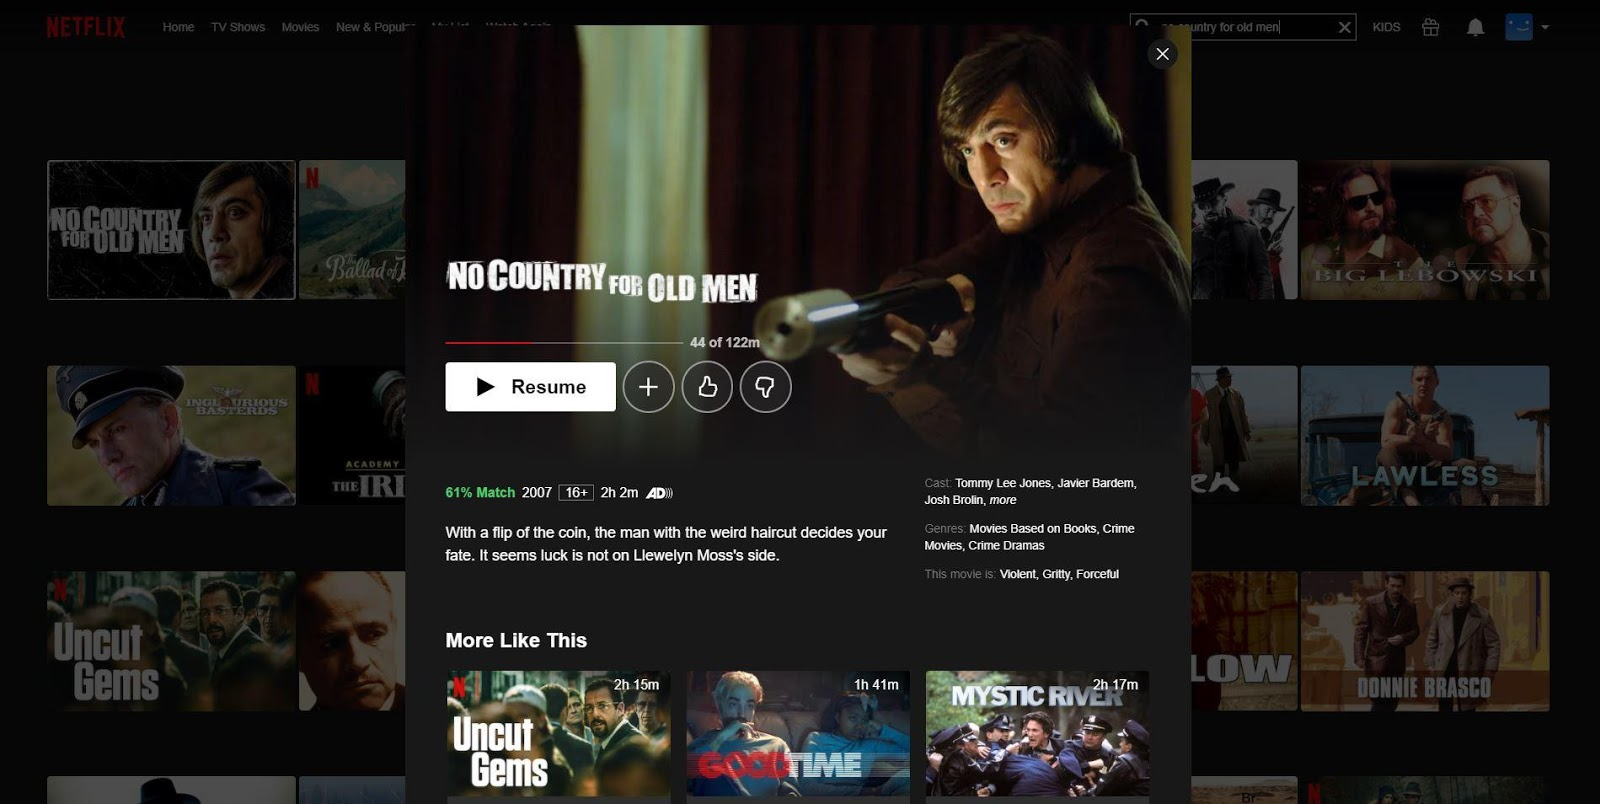 Can I Watch No Country for Old Men on Netflix